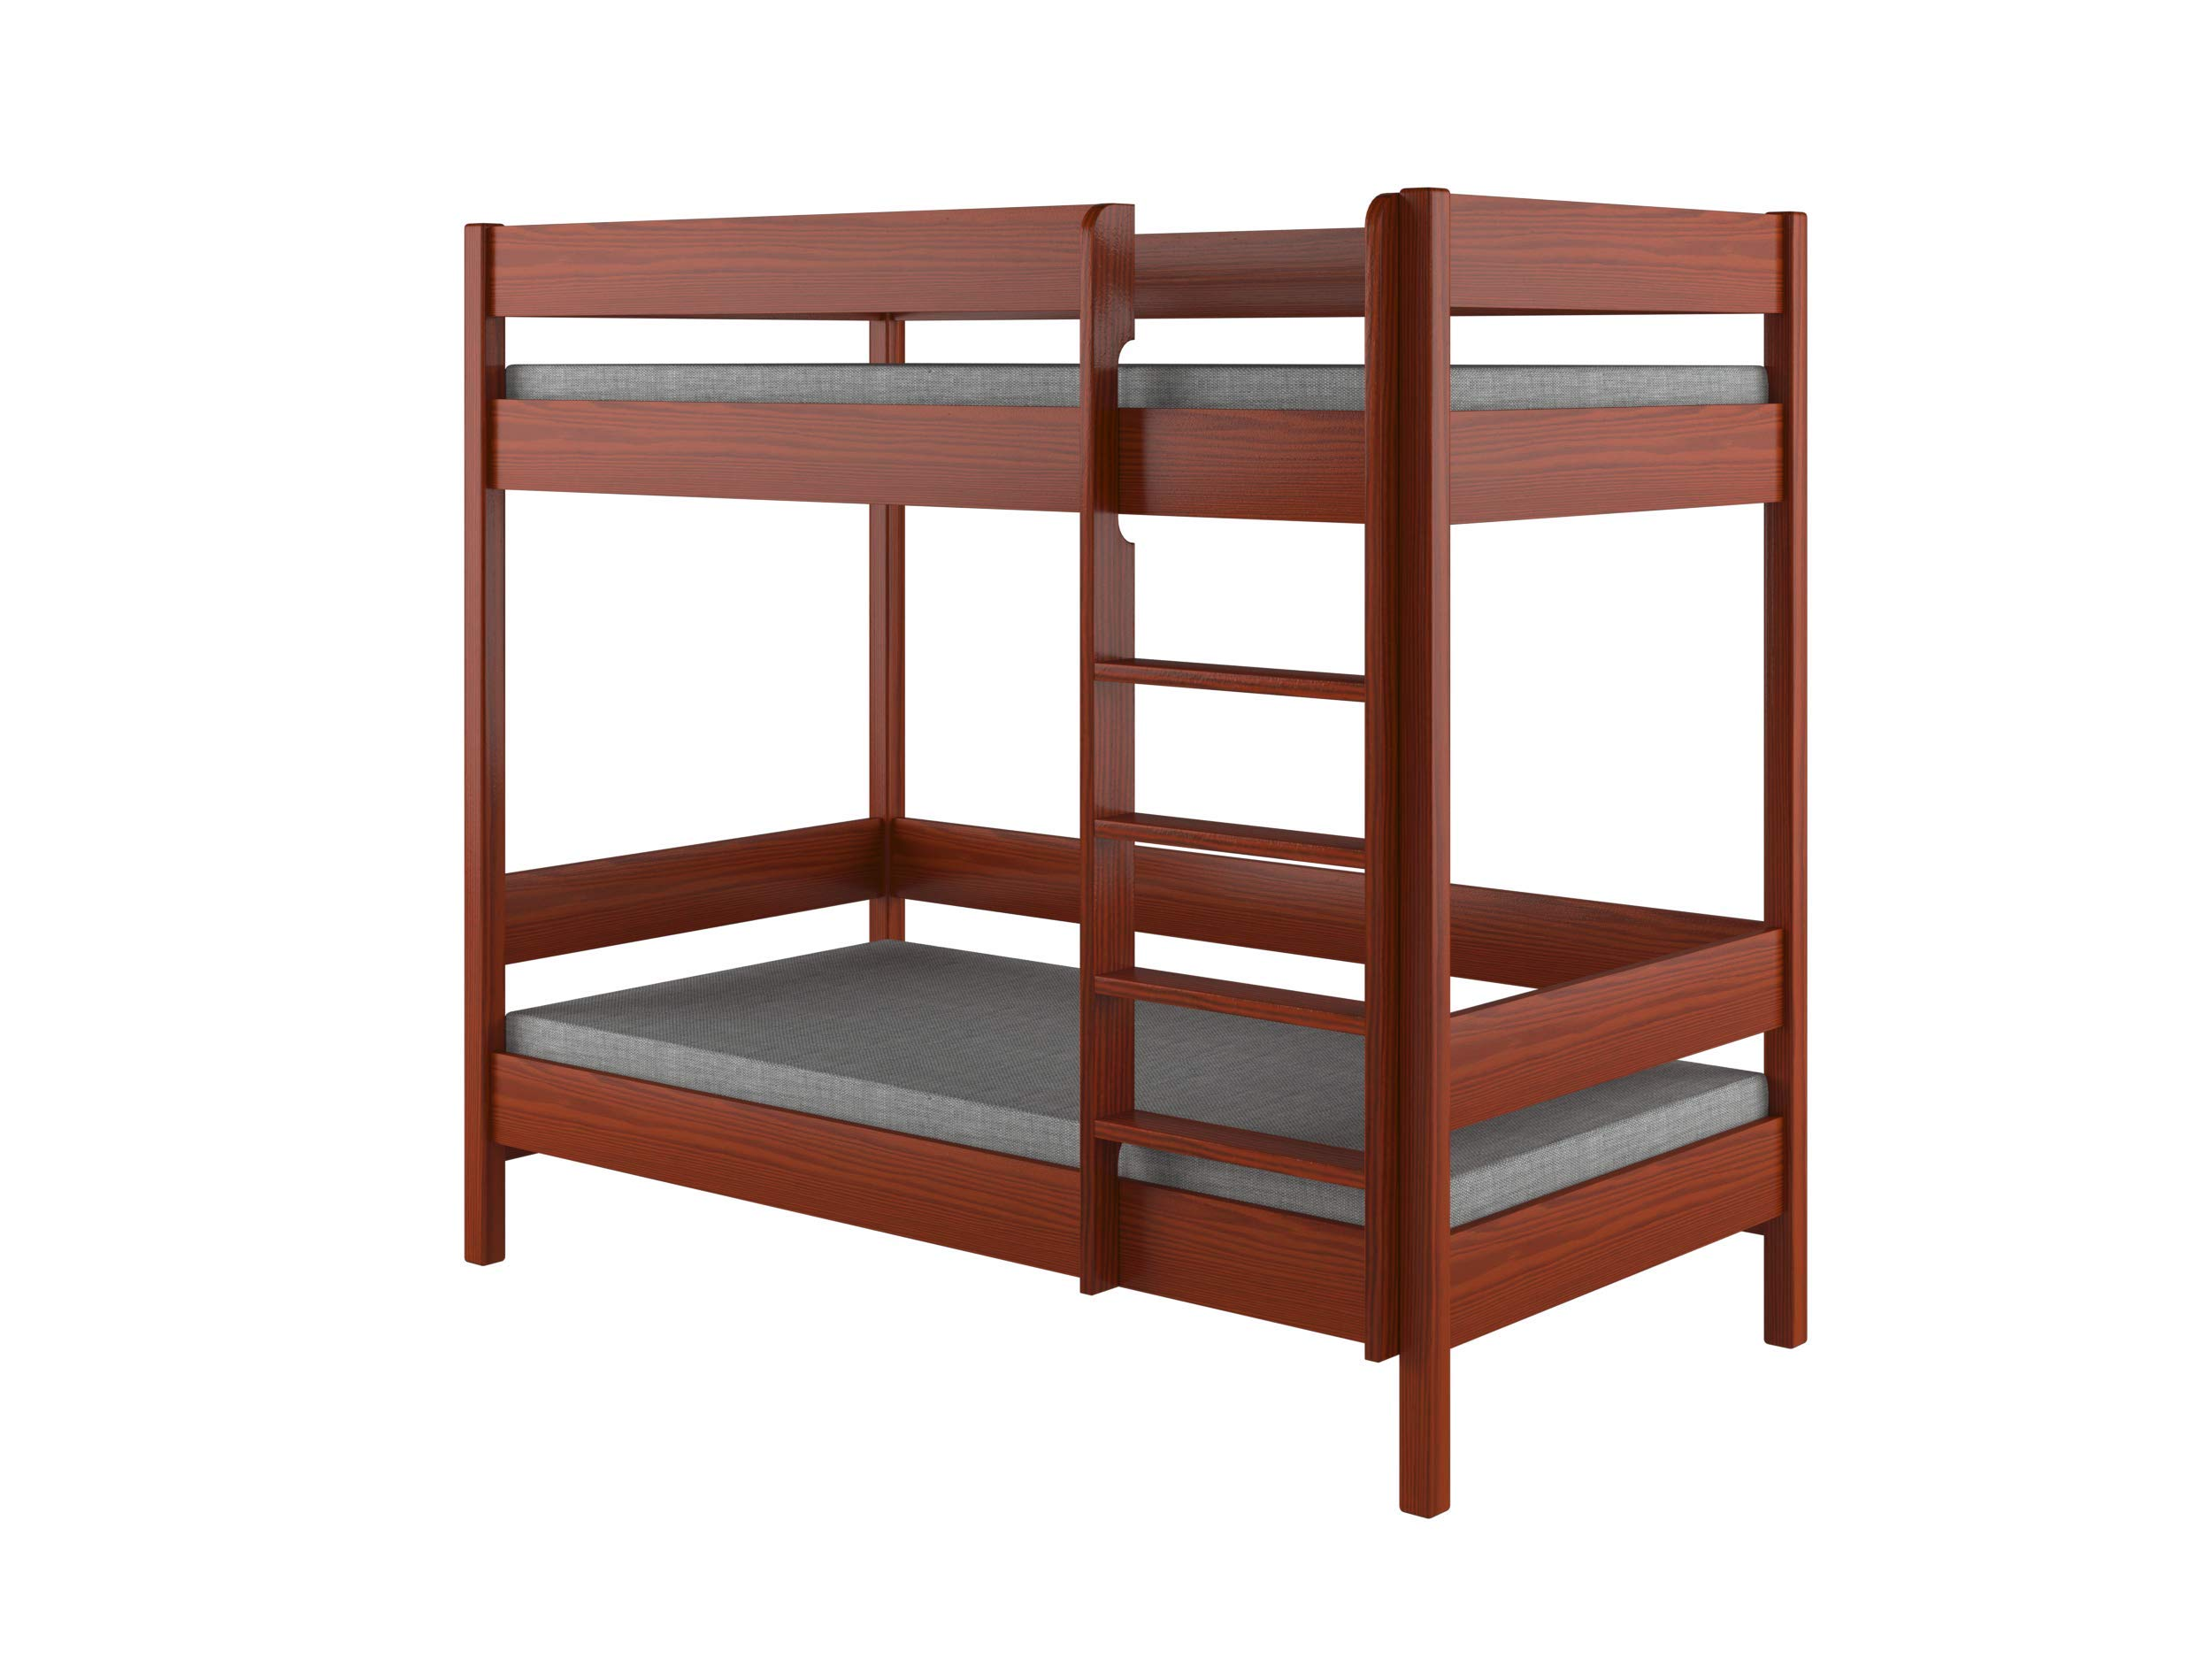 Children's Beds Home Bunk Beds - Kids Children Juniors Single with 2 Foam Mattress but No Drawers (140x70, Palisander) Children's Beds Home Bed with barriers internal dimensions: 140x70x160, 160x80x160, 180x80x160, 180x90x160, 200x90x160. External dimensions: 147x77x160, 167x87x160, 187x87x160, 187x97x160, 207x97x160 Bunk Bed with access from the - Front (D-1), Universal bed entrance - left or right side. 1